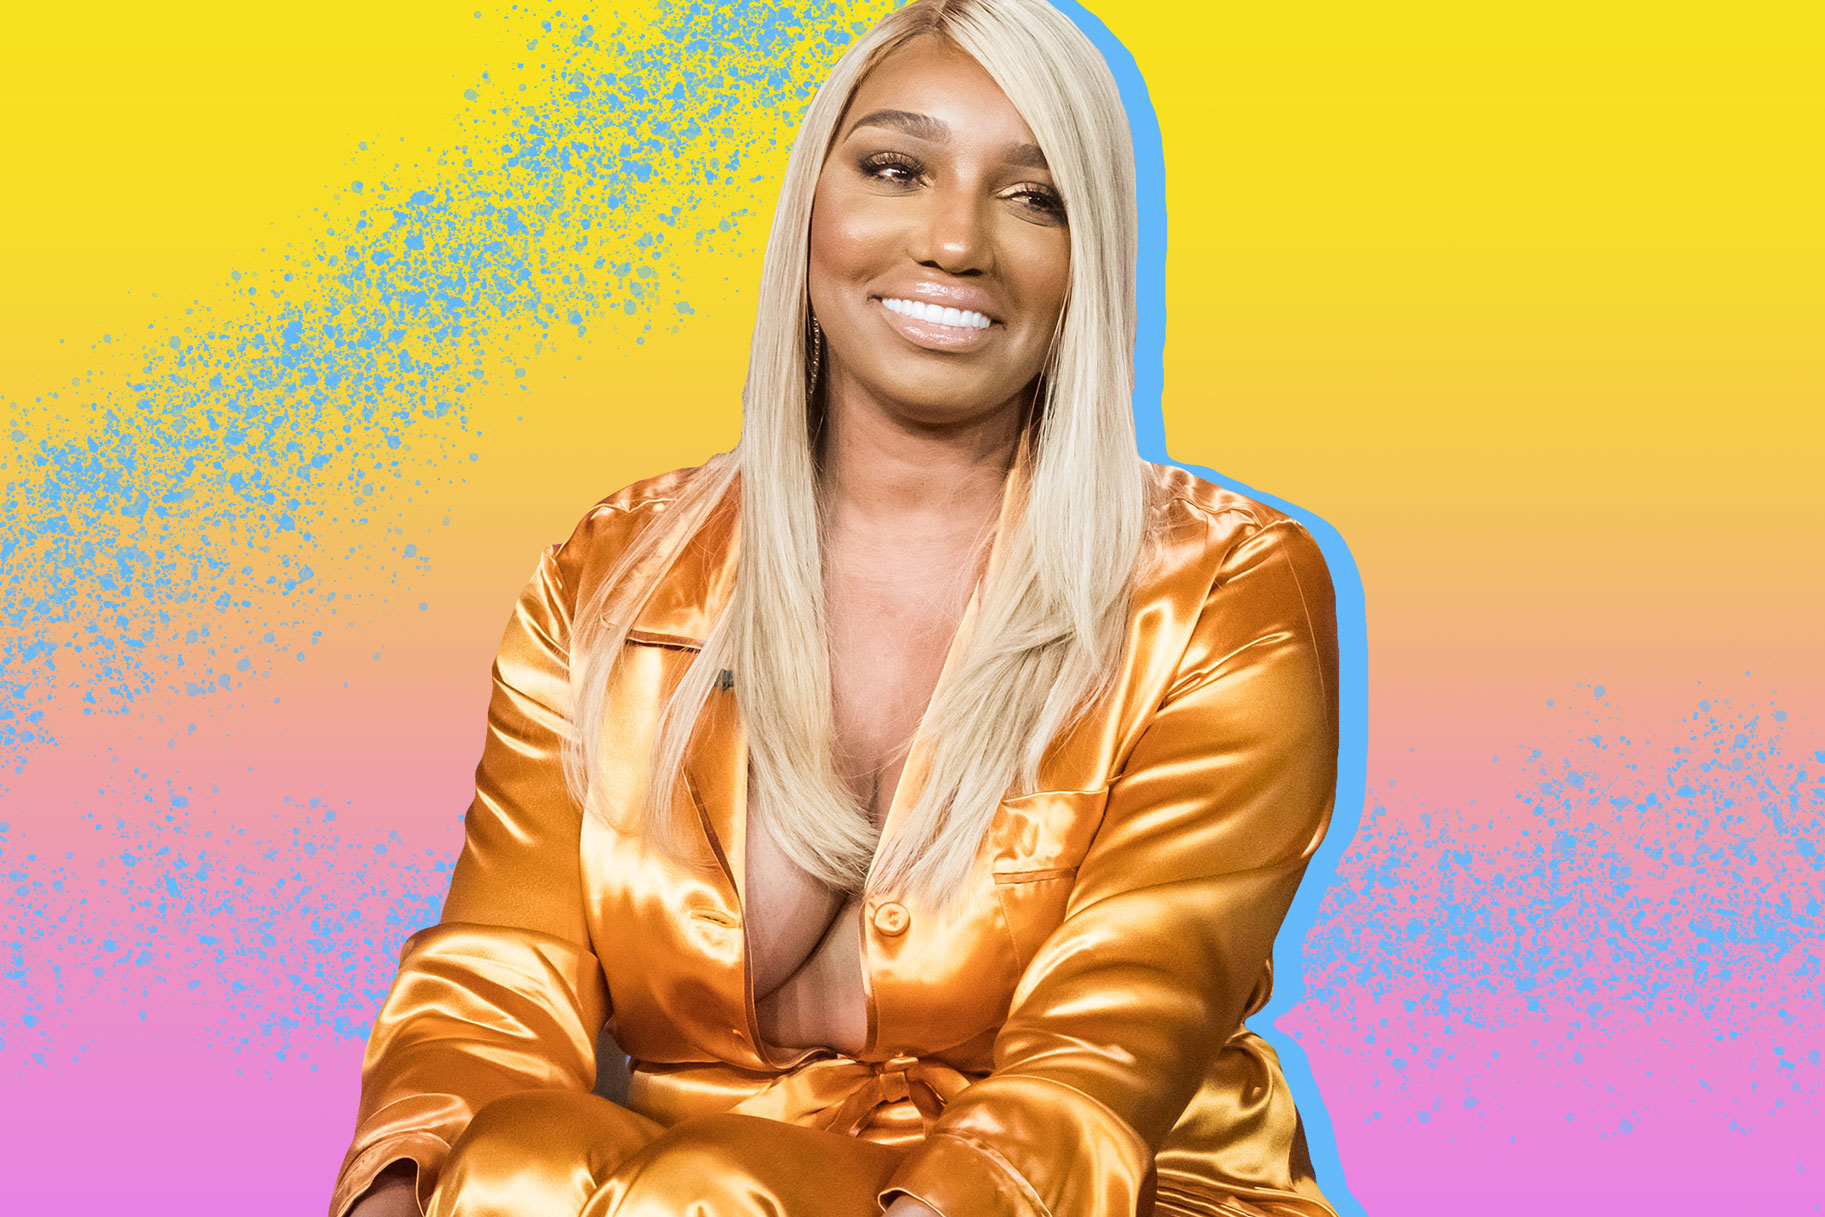 NeNe Leakes' Fans Praise Her Figure After Seeing This Photo